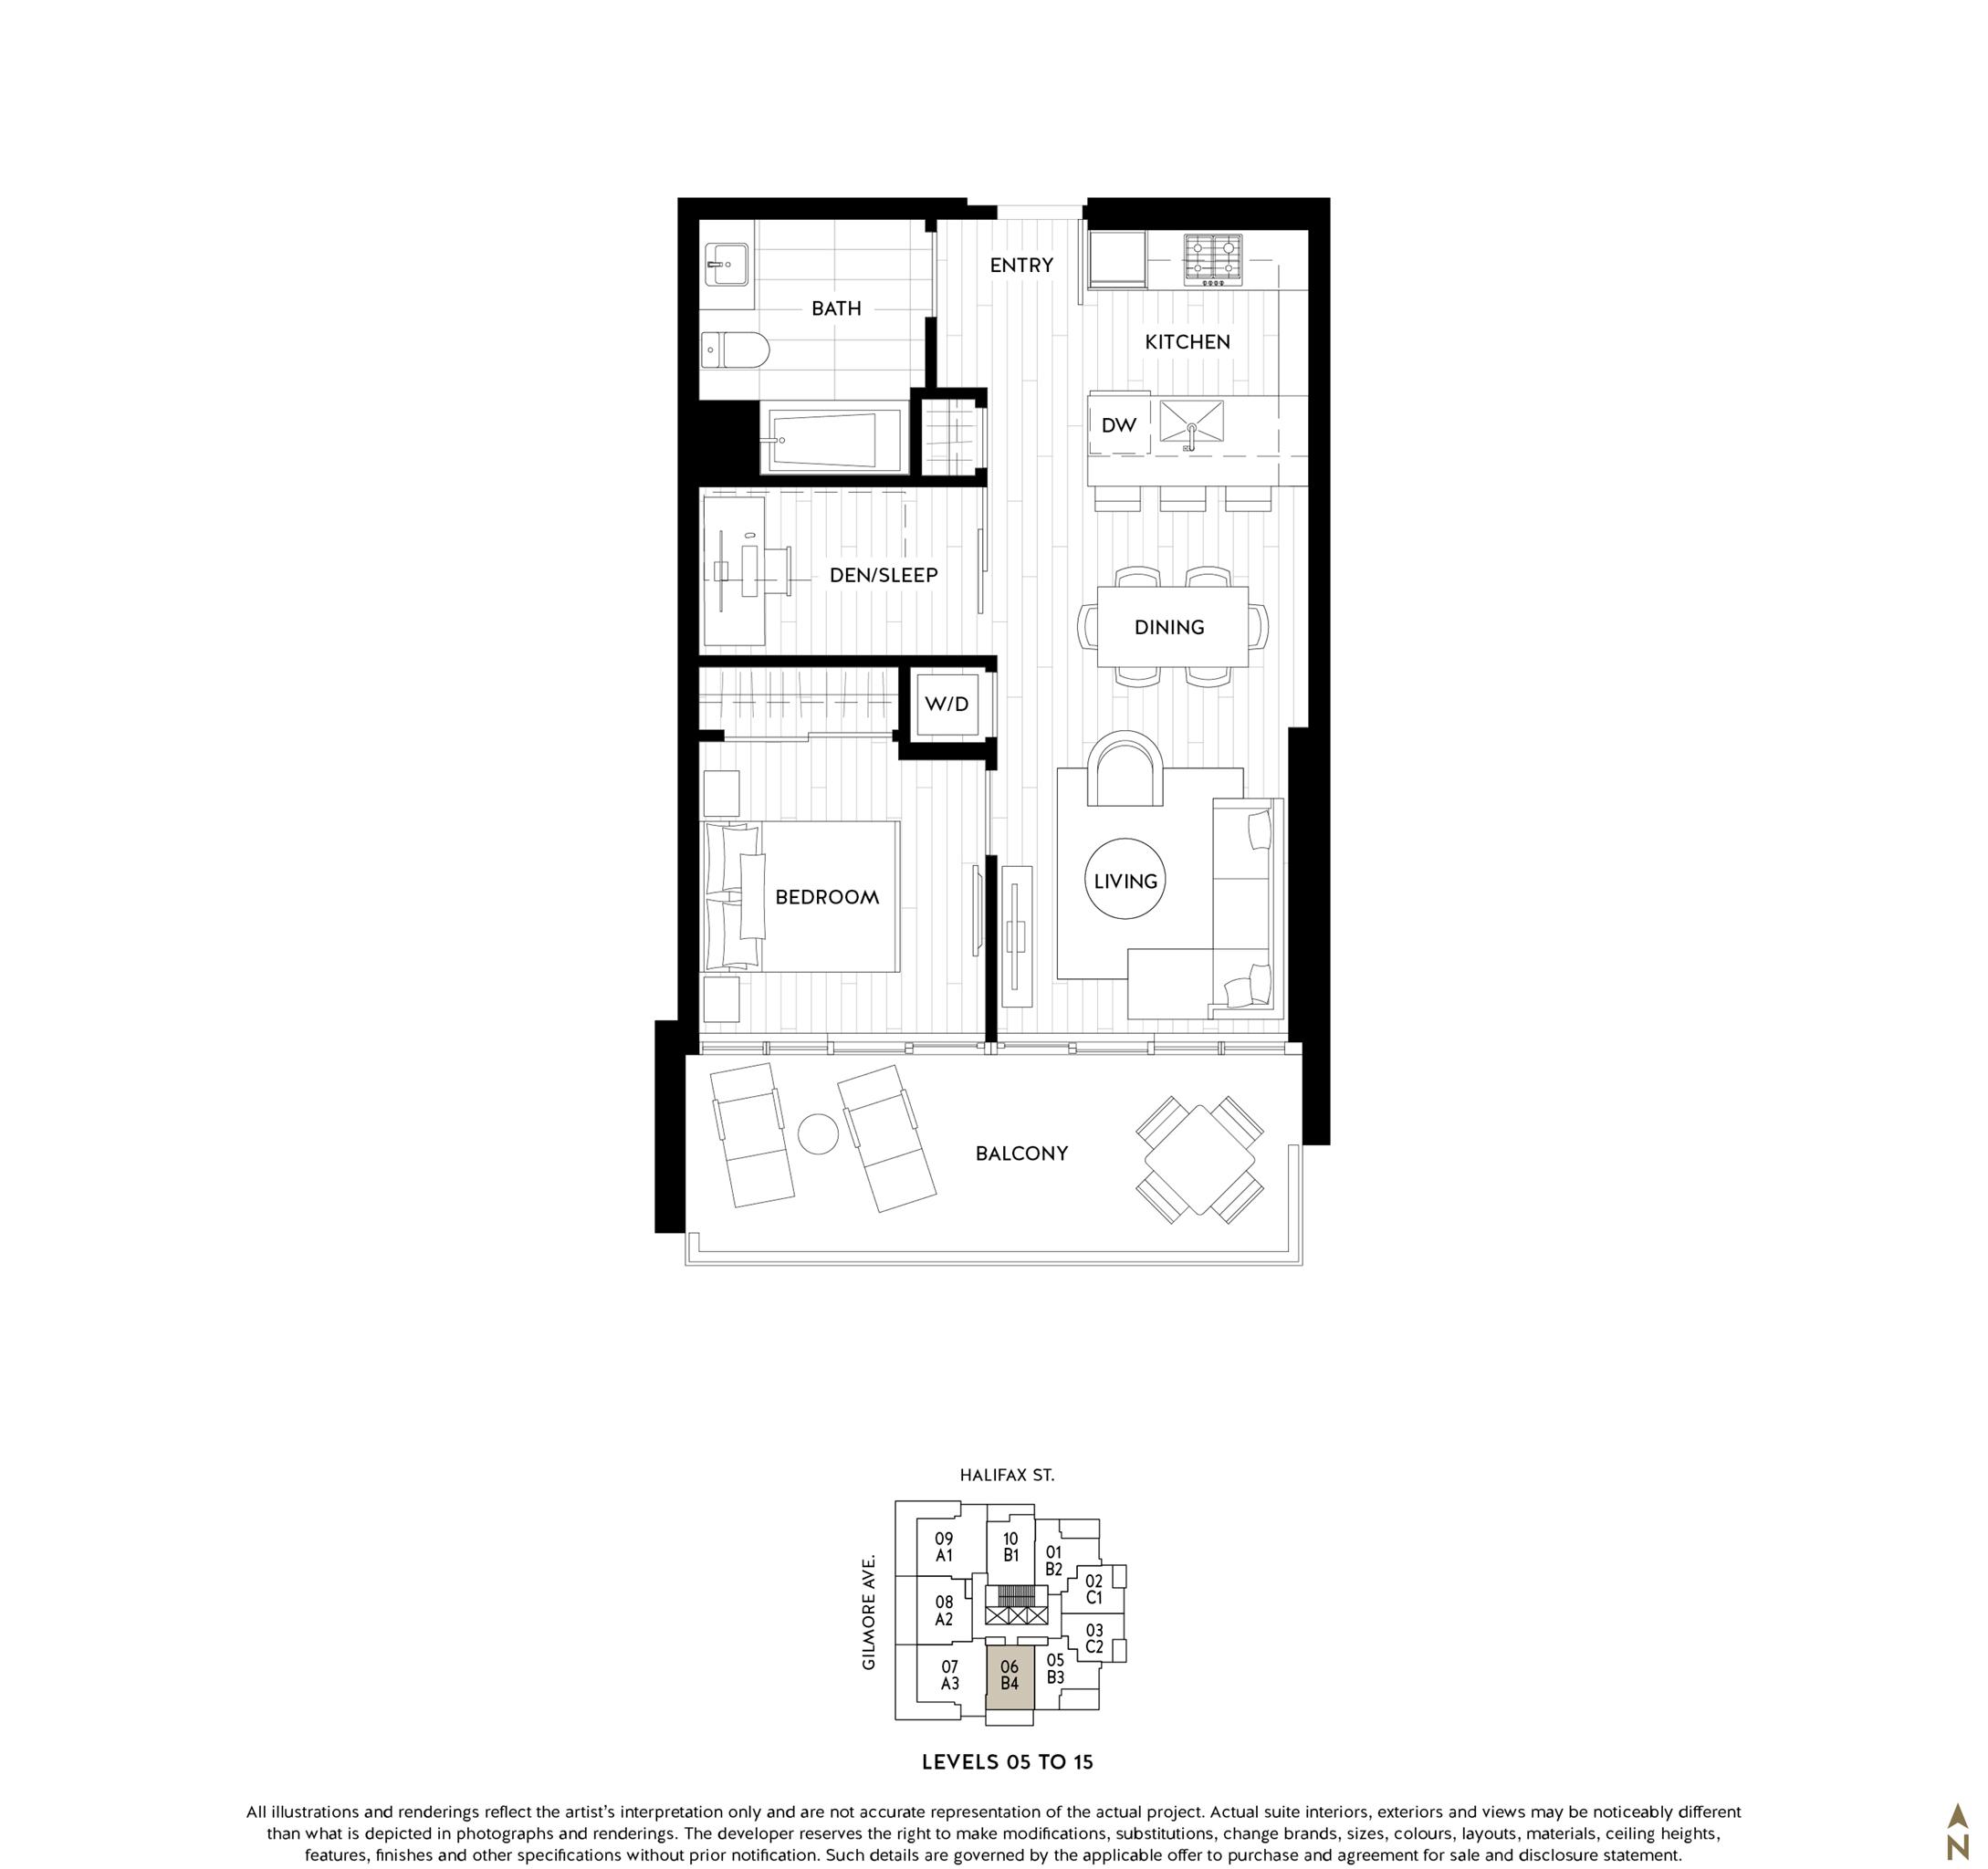 Nice Floorplan Photos >> Free Floor Plan From Bainbridge Floorplan ...